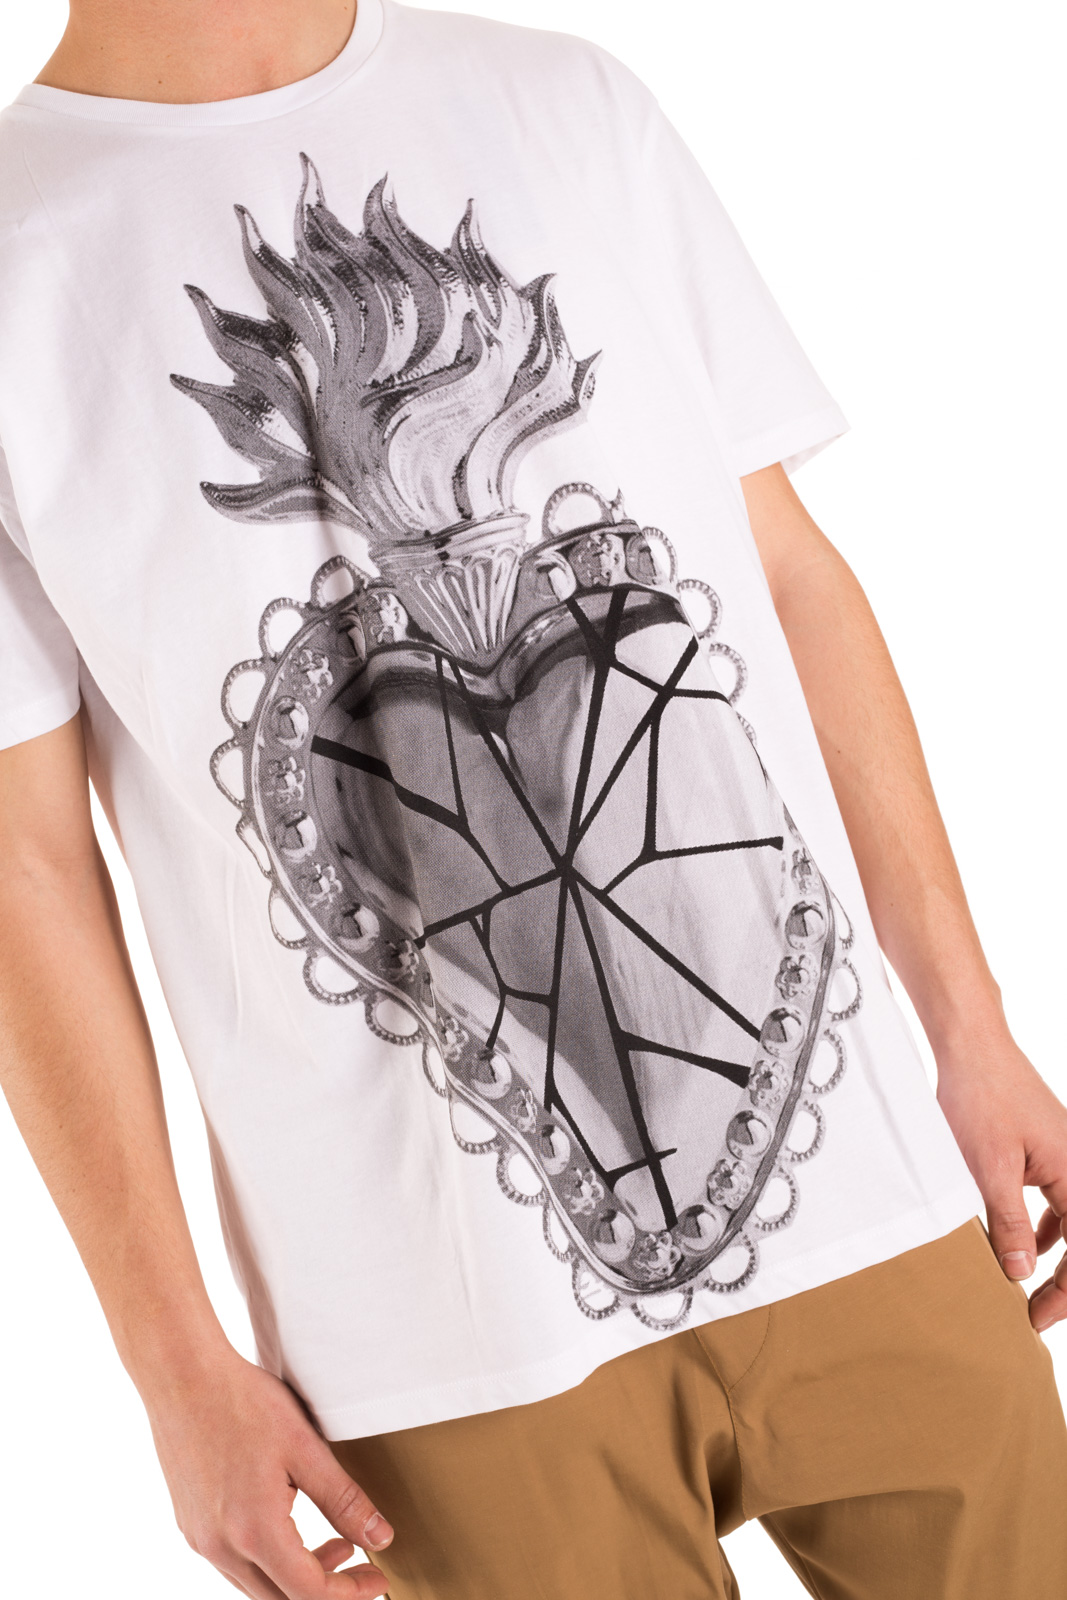 No Perfect - T-shirt oversize cuore sacro bianca